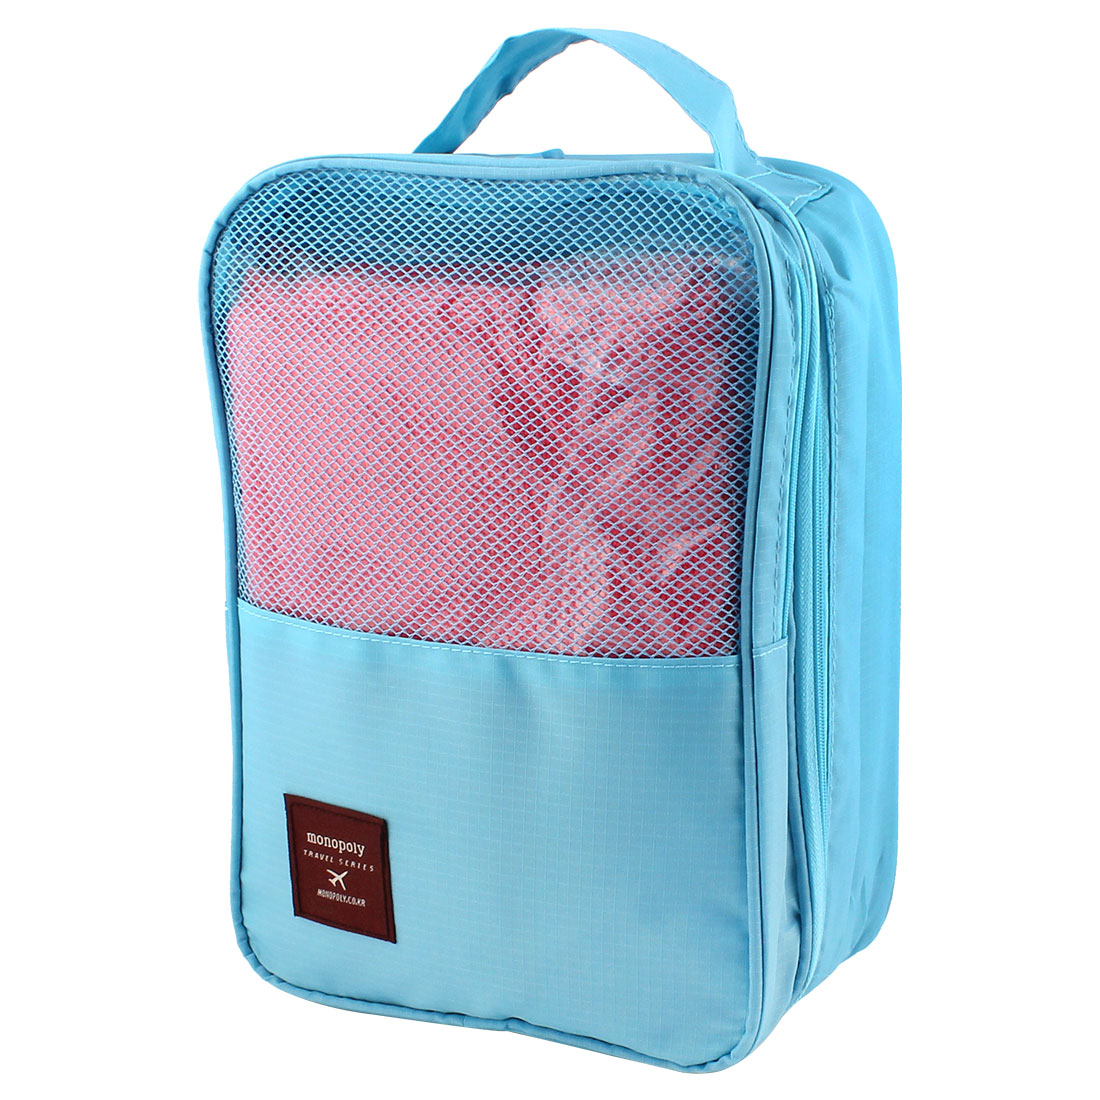 Sky Blue Portable 3 Layers Shoes Storage Folding Pouch Bag Case Organizer Keeper